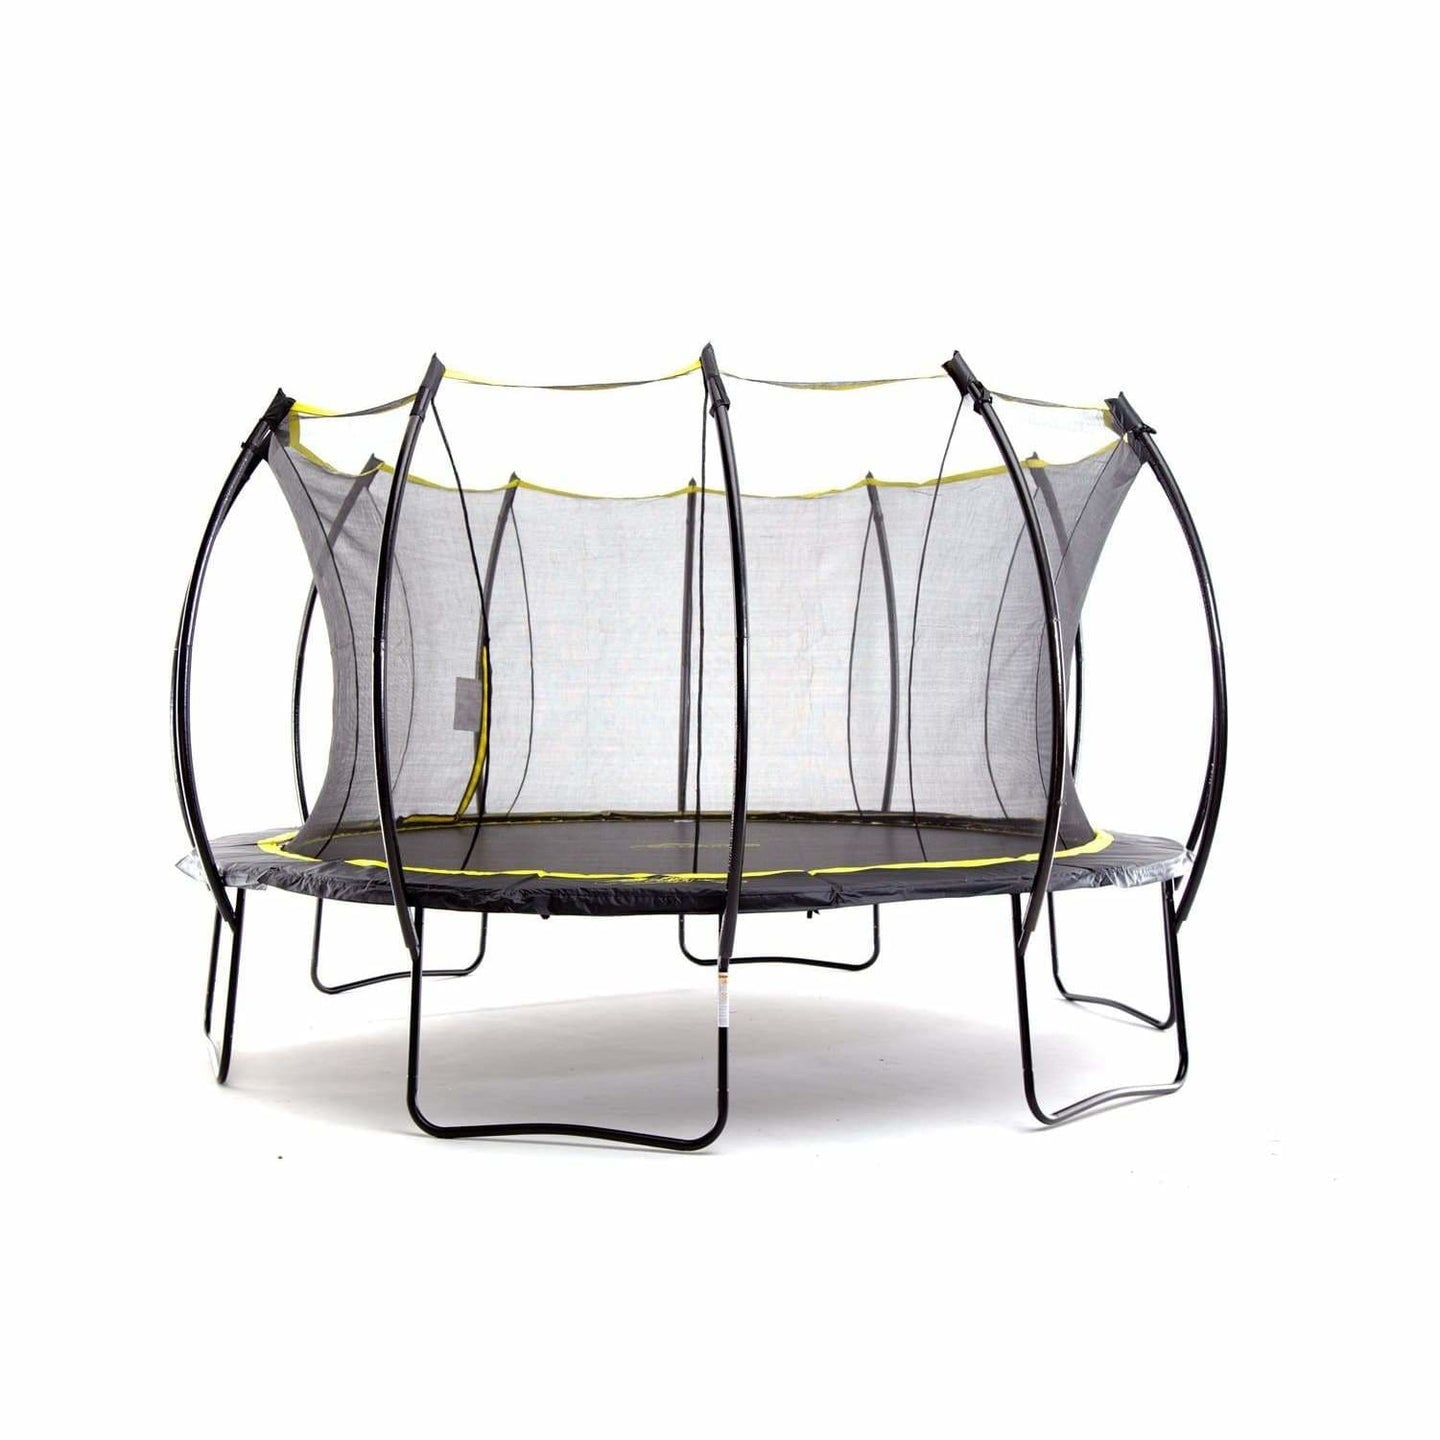 Round Trampoline SkyBound Stratos 14 ft Top Ring Enclosure - SB-T14STR02 - SkyBound Stratos 14ft Trampoline - Round Trampolines